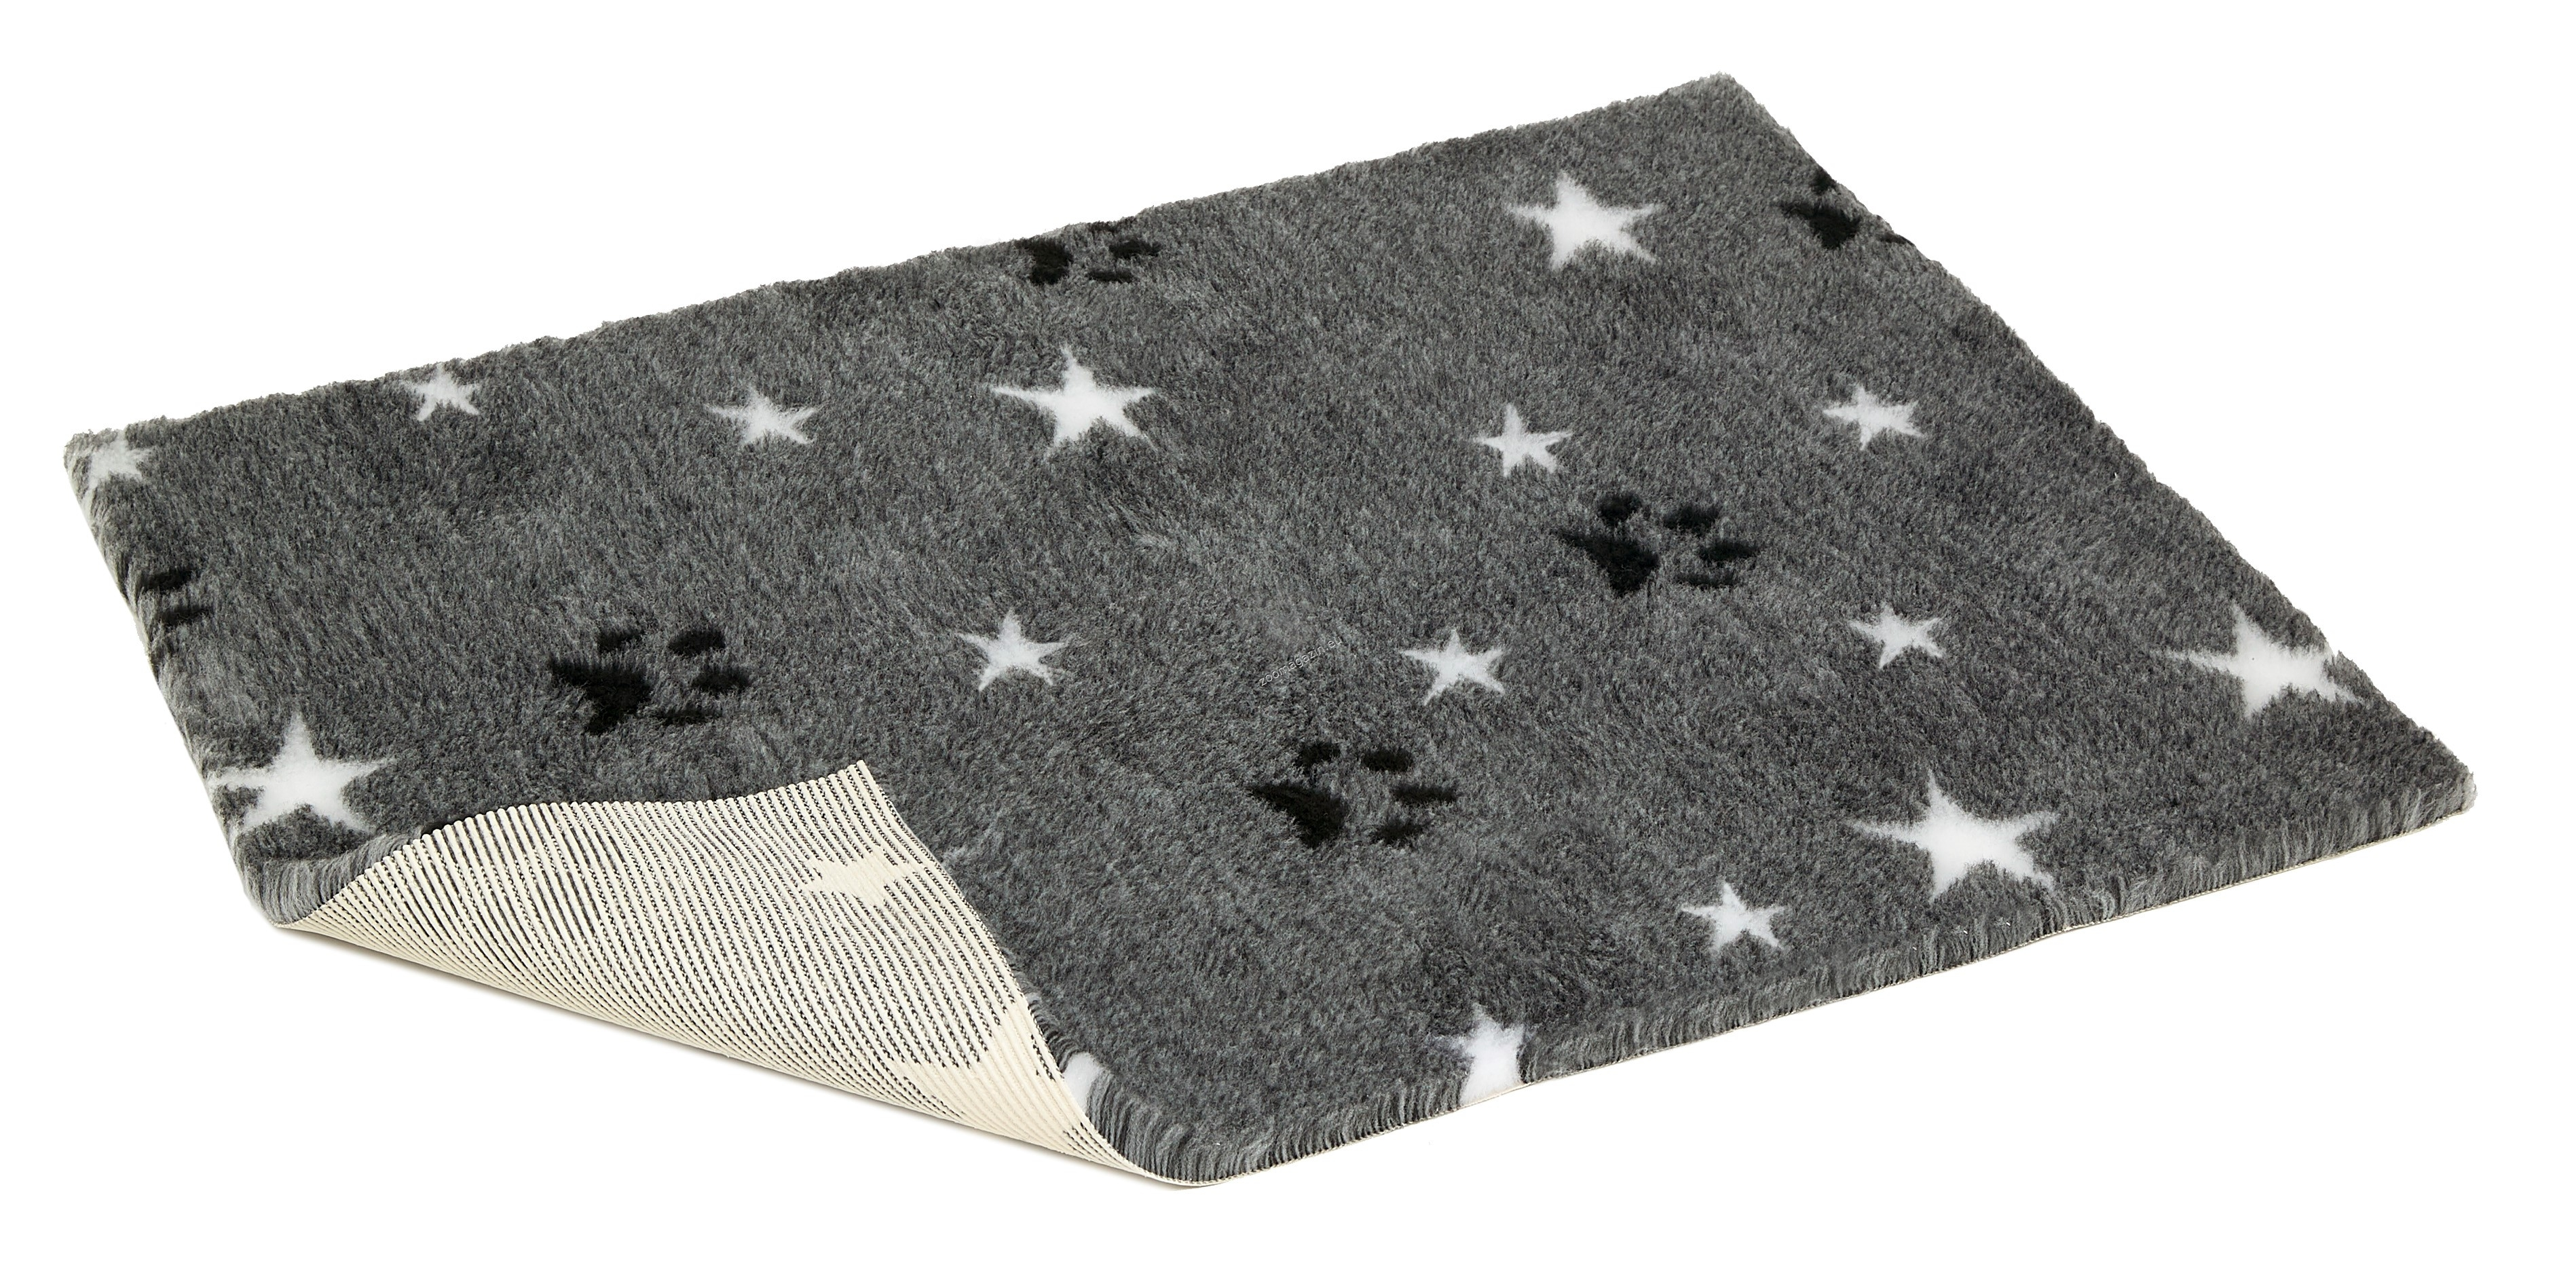 Vetbed Non-Slip Lime Grey with Stars and Paws - мека постелка със слой против пързаляне 75 / 50 см.